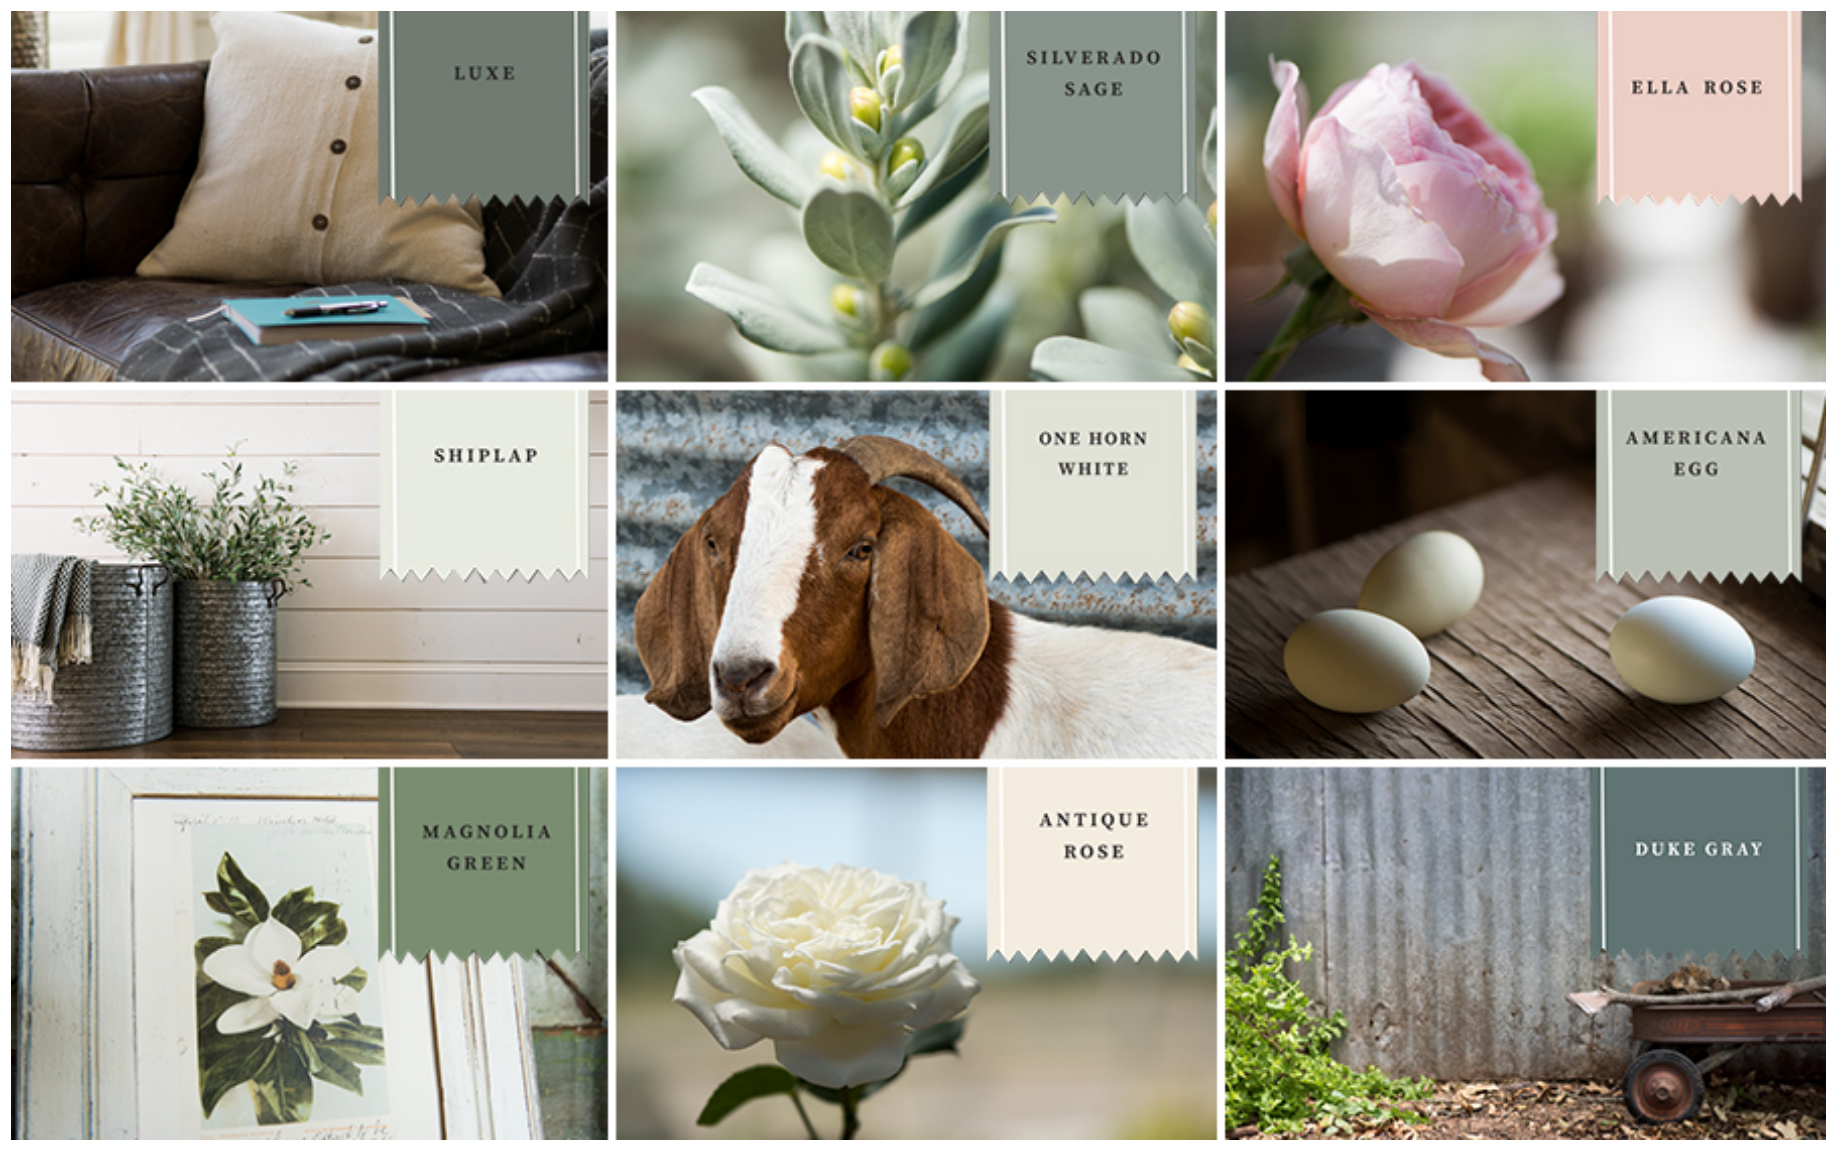 Magnolia Paint by Joanna Gaies now available at Blackhawk Hardware